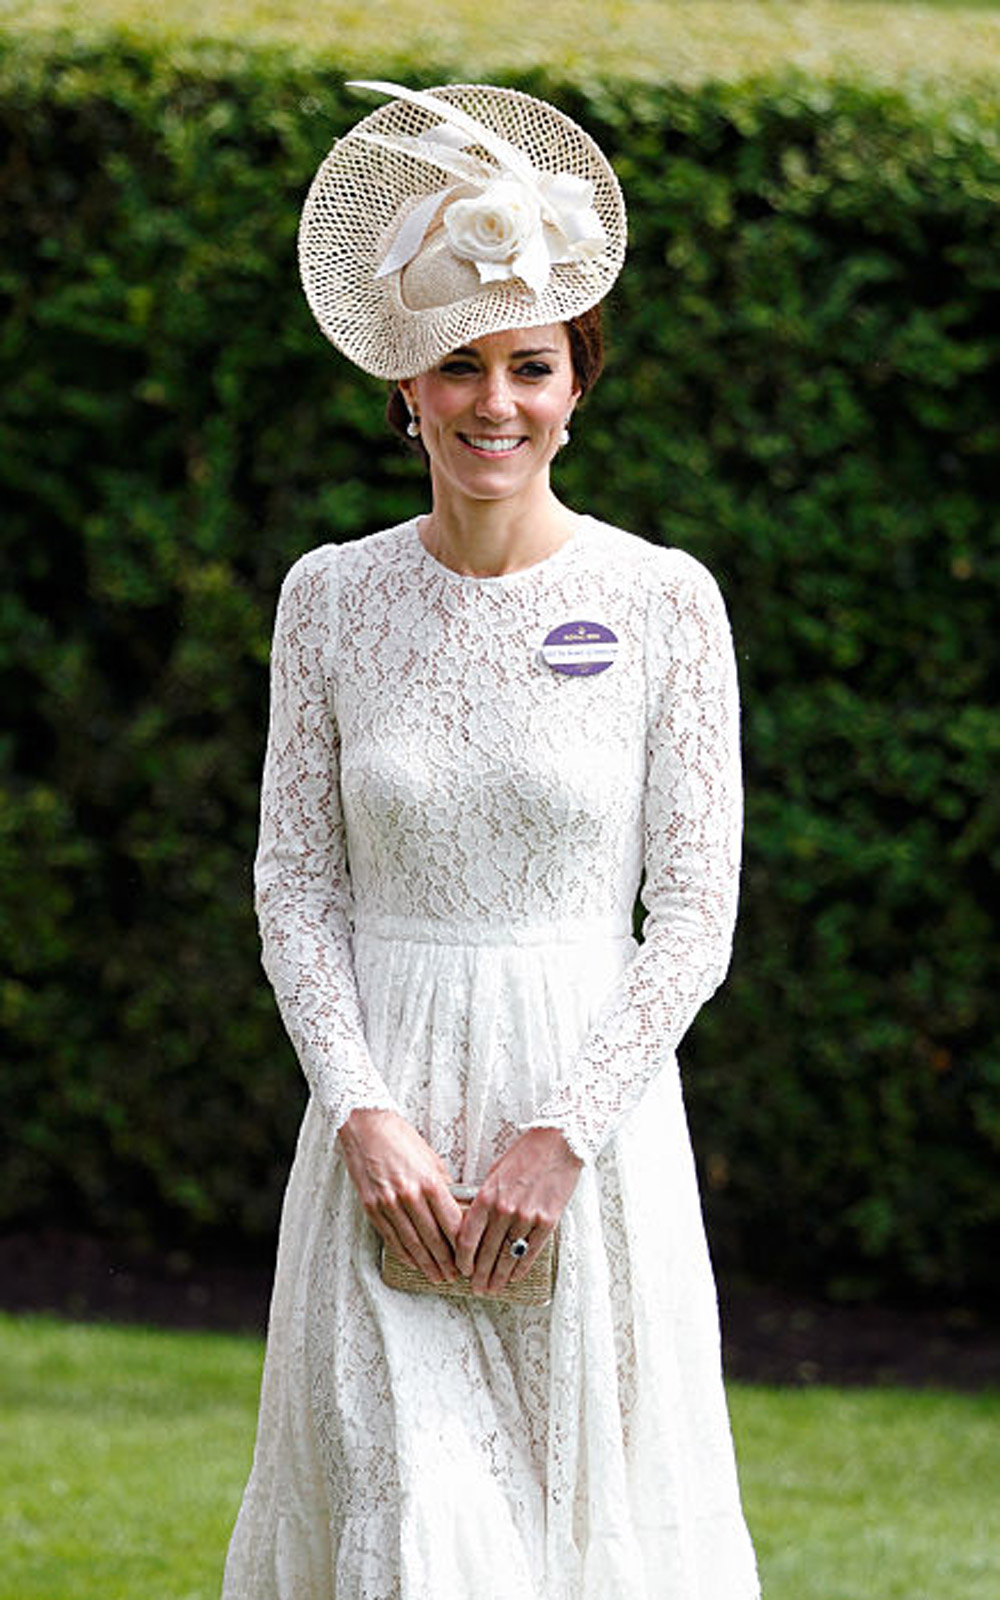 ASCOT, UNITED KINGDOM - JUNE 15: (EMBARGOED FOR PUBLICATION IN UK NEWSPAPERS UNTIL 48 HOURS AFTER CREATE DATE AND TIME) Catherine, Duchess of Cambridge attends day 2 of Royal Ascot at Ascot Racecourse on June 15, 2016 in Ascot, England. (Photo by Max Mumb